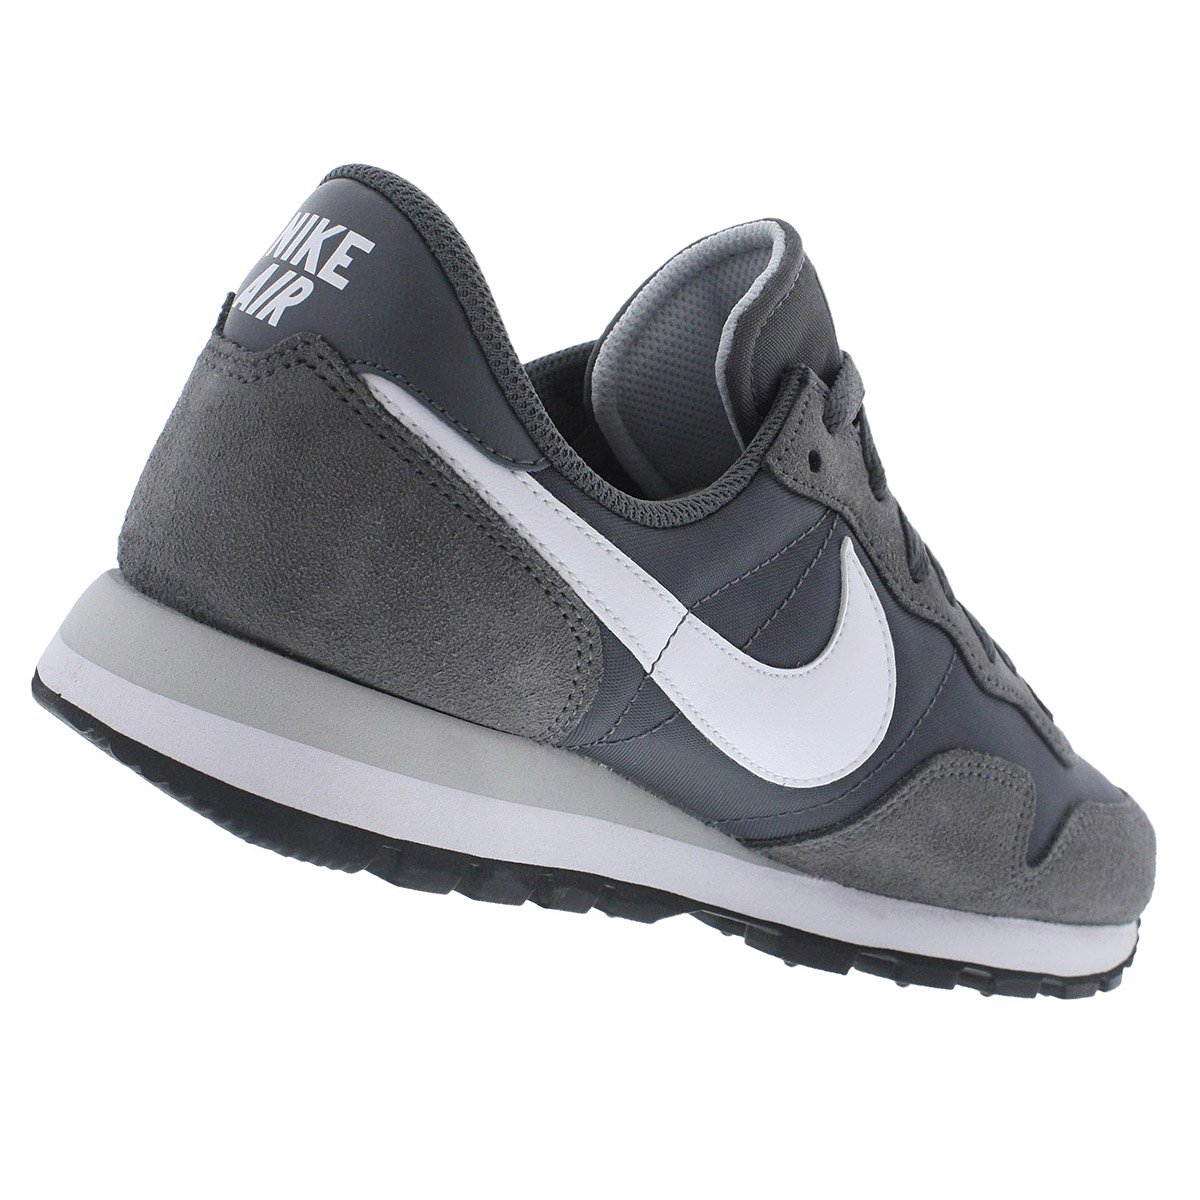 nike air pegasus 83 herren sneaker grau schuhe retro. Black Bedroom Furniture Sets. Home Design Ideas